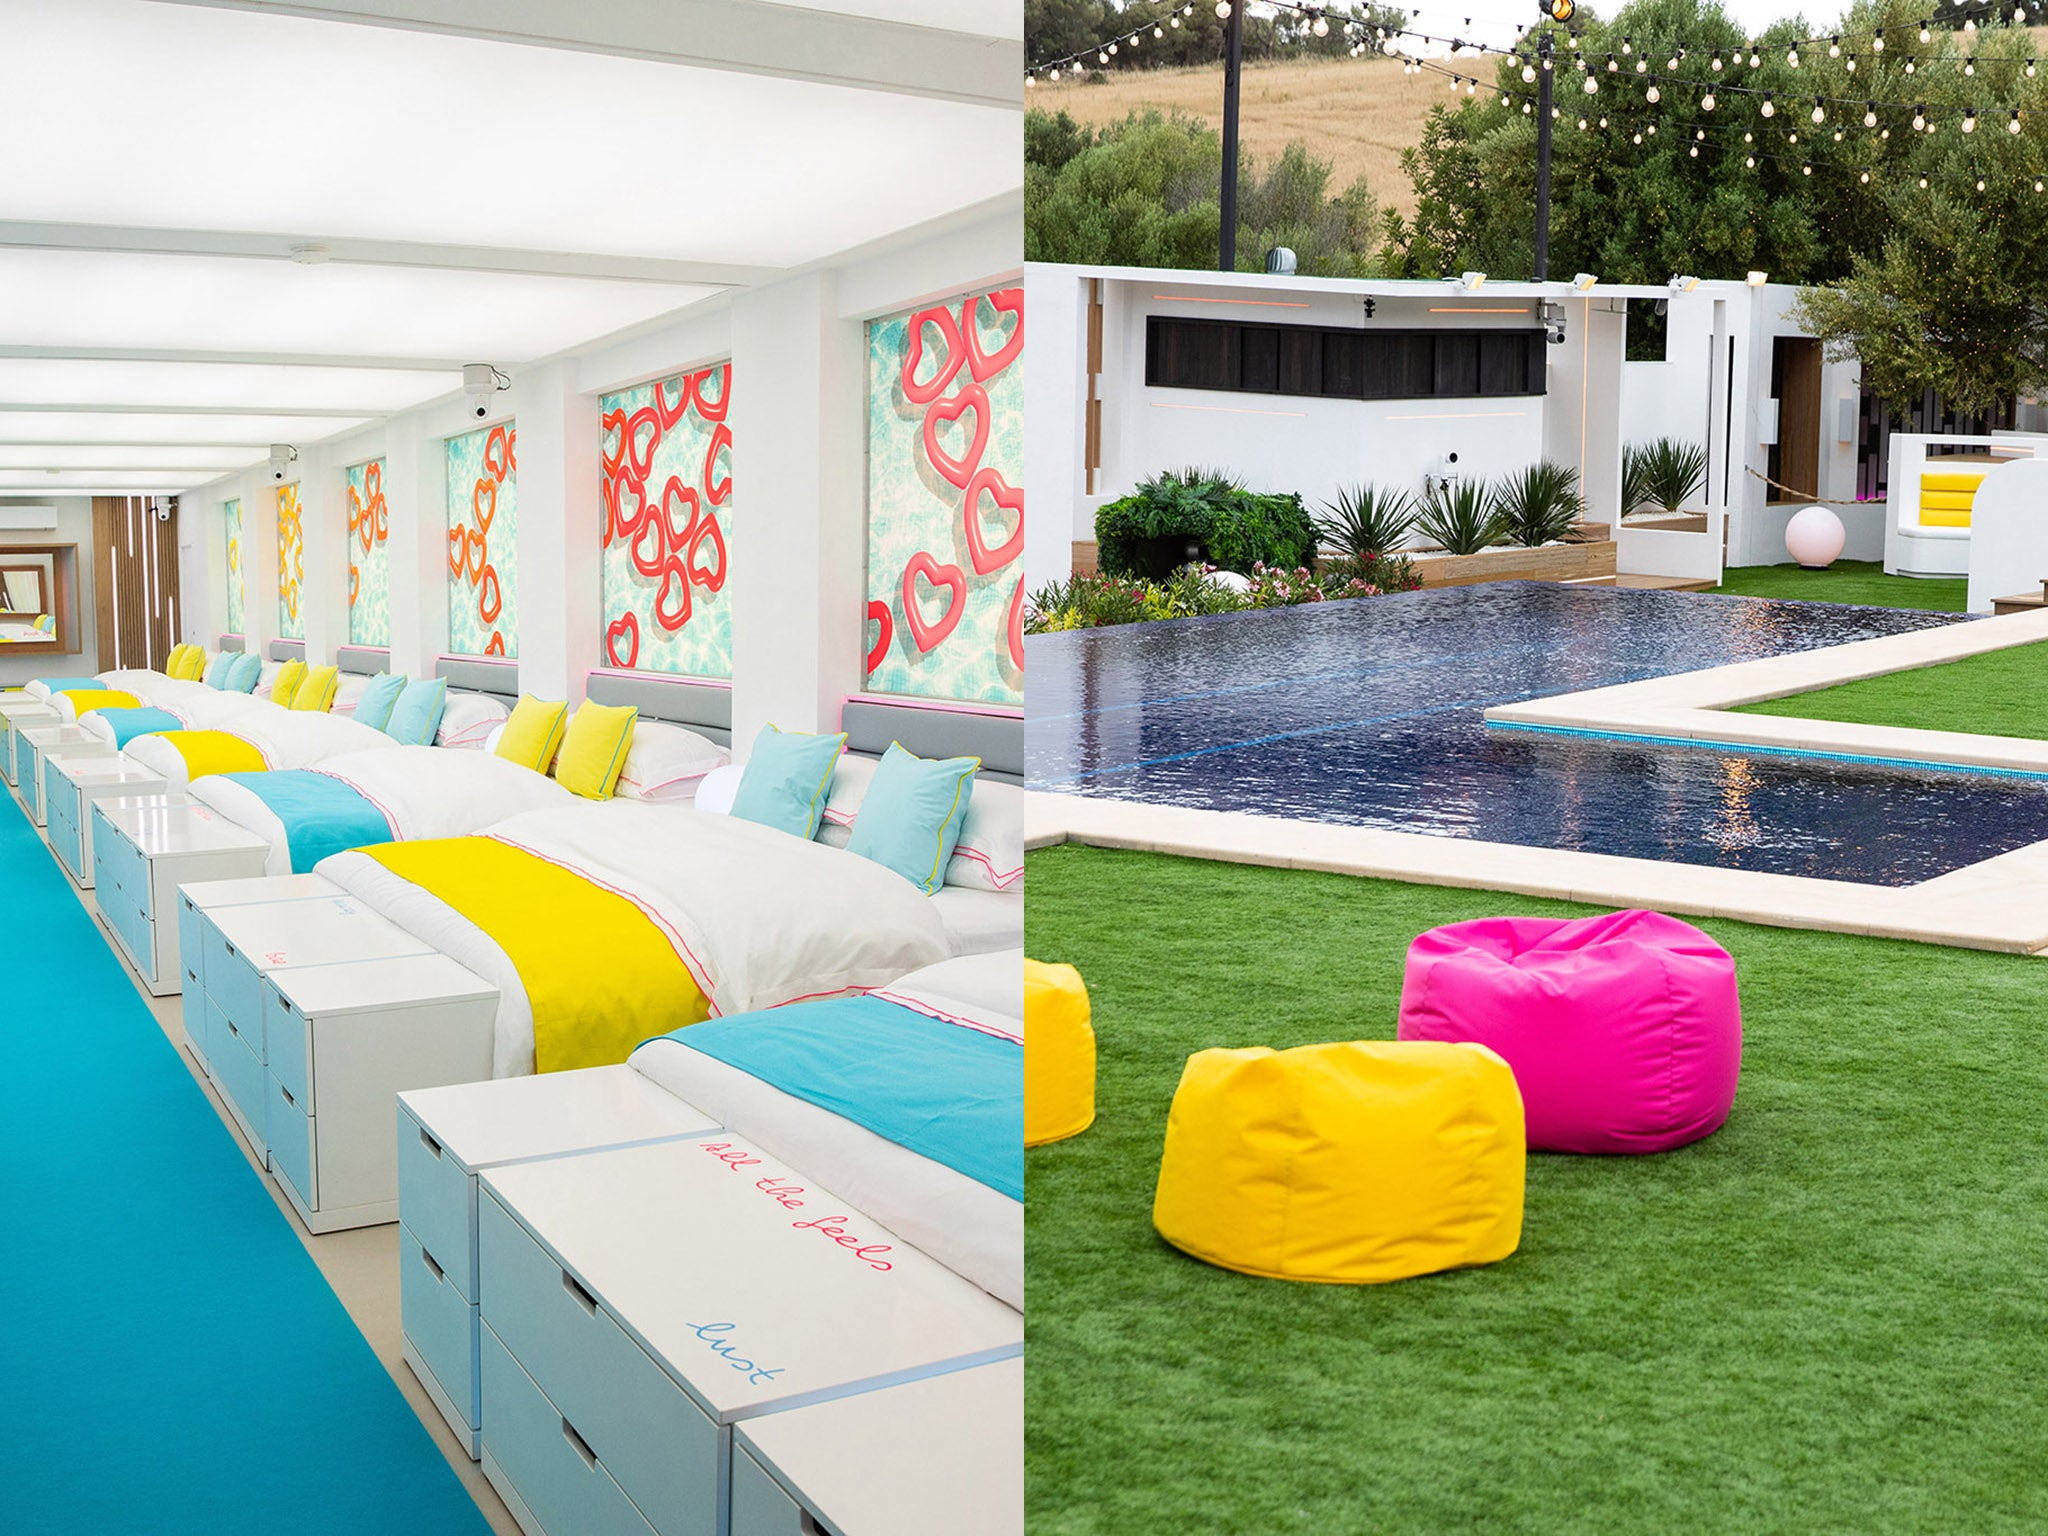 Love Island 2019: ITV gives first look inside villa with hot